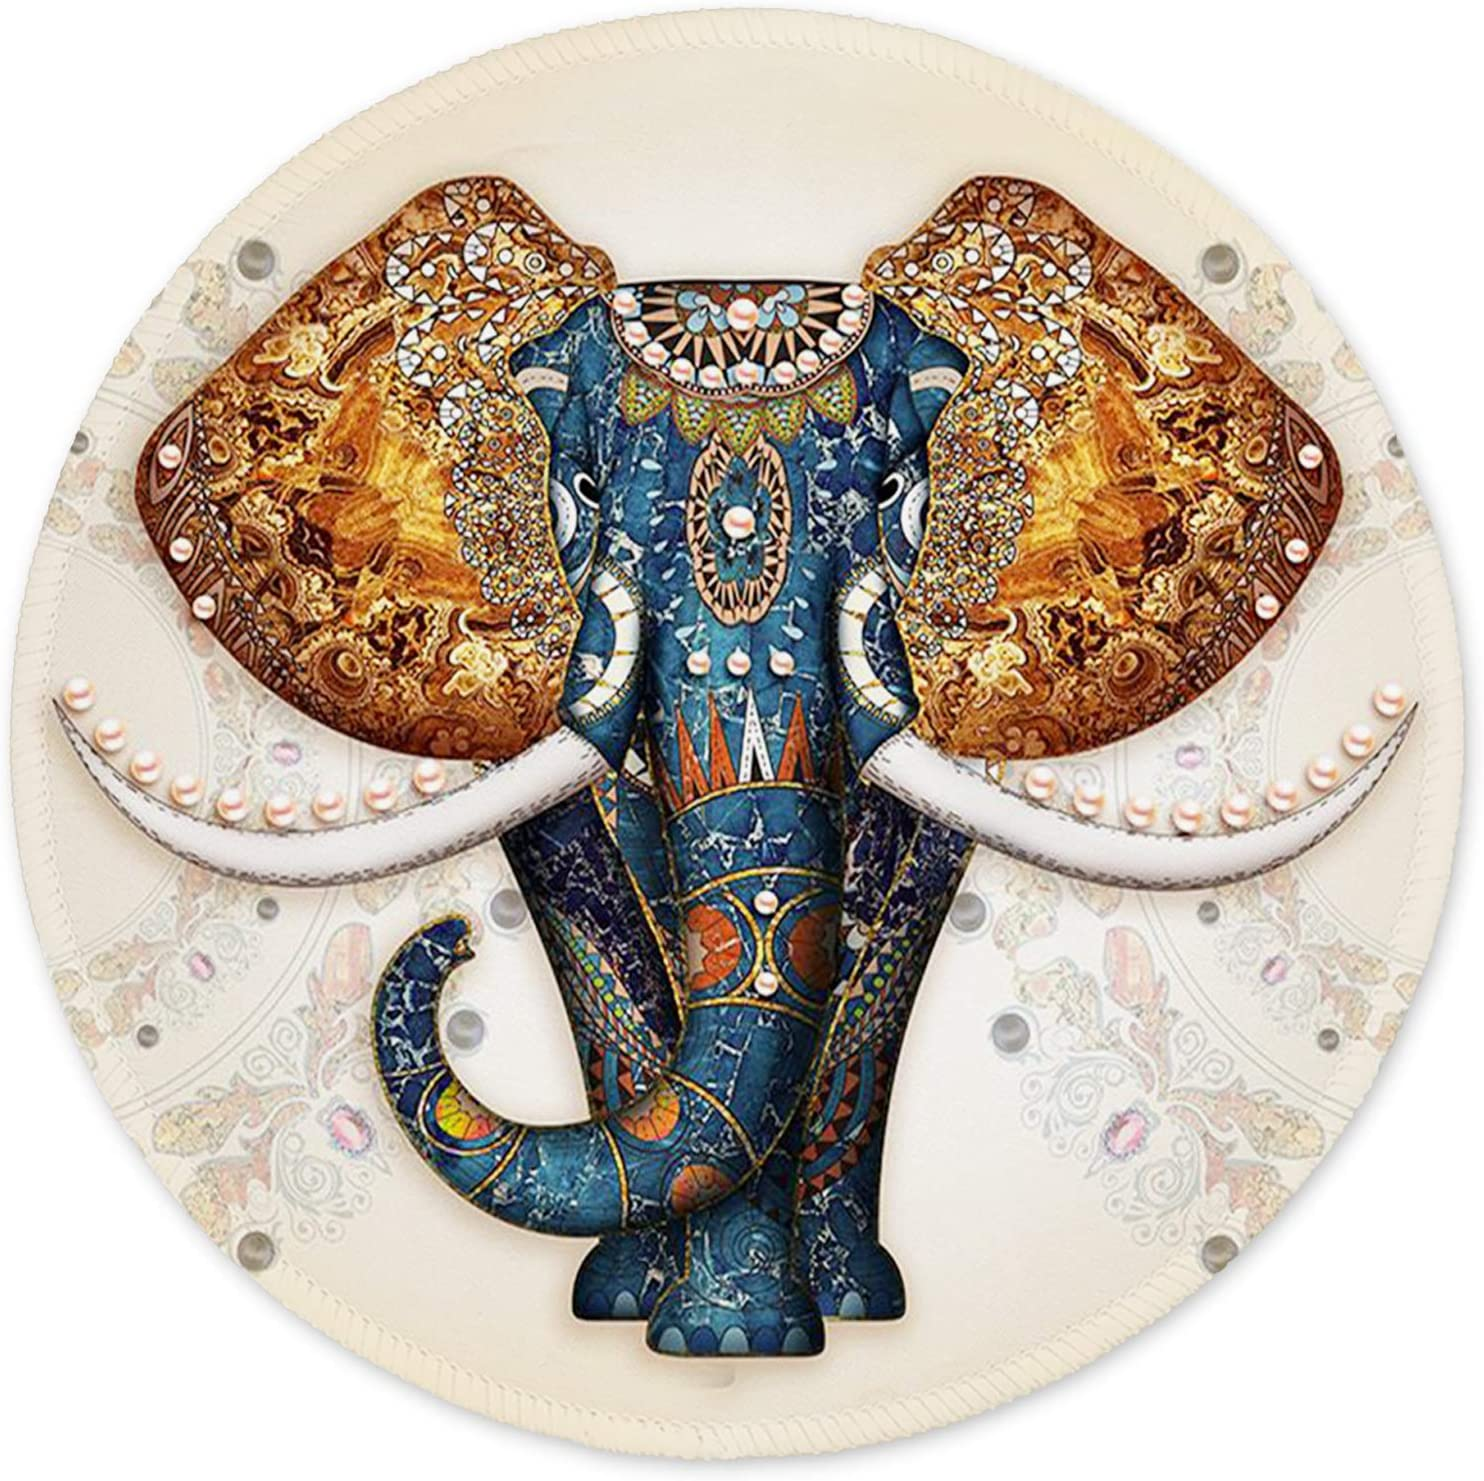 ITNRSIIET Mouse Pad, Cute Elephant Mouse Mat, Small Mouse Pad with Design, Custom Mouse Pad for Girls and Women, Enhanced Thickness, Dual Stitched Edges, Round Mouse Pad for Office Computer Laptops